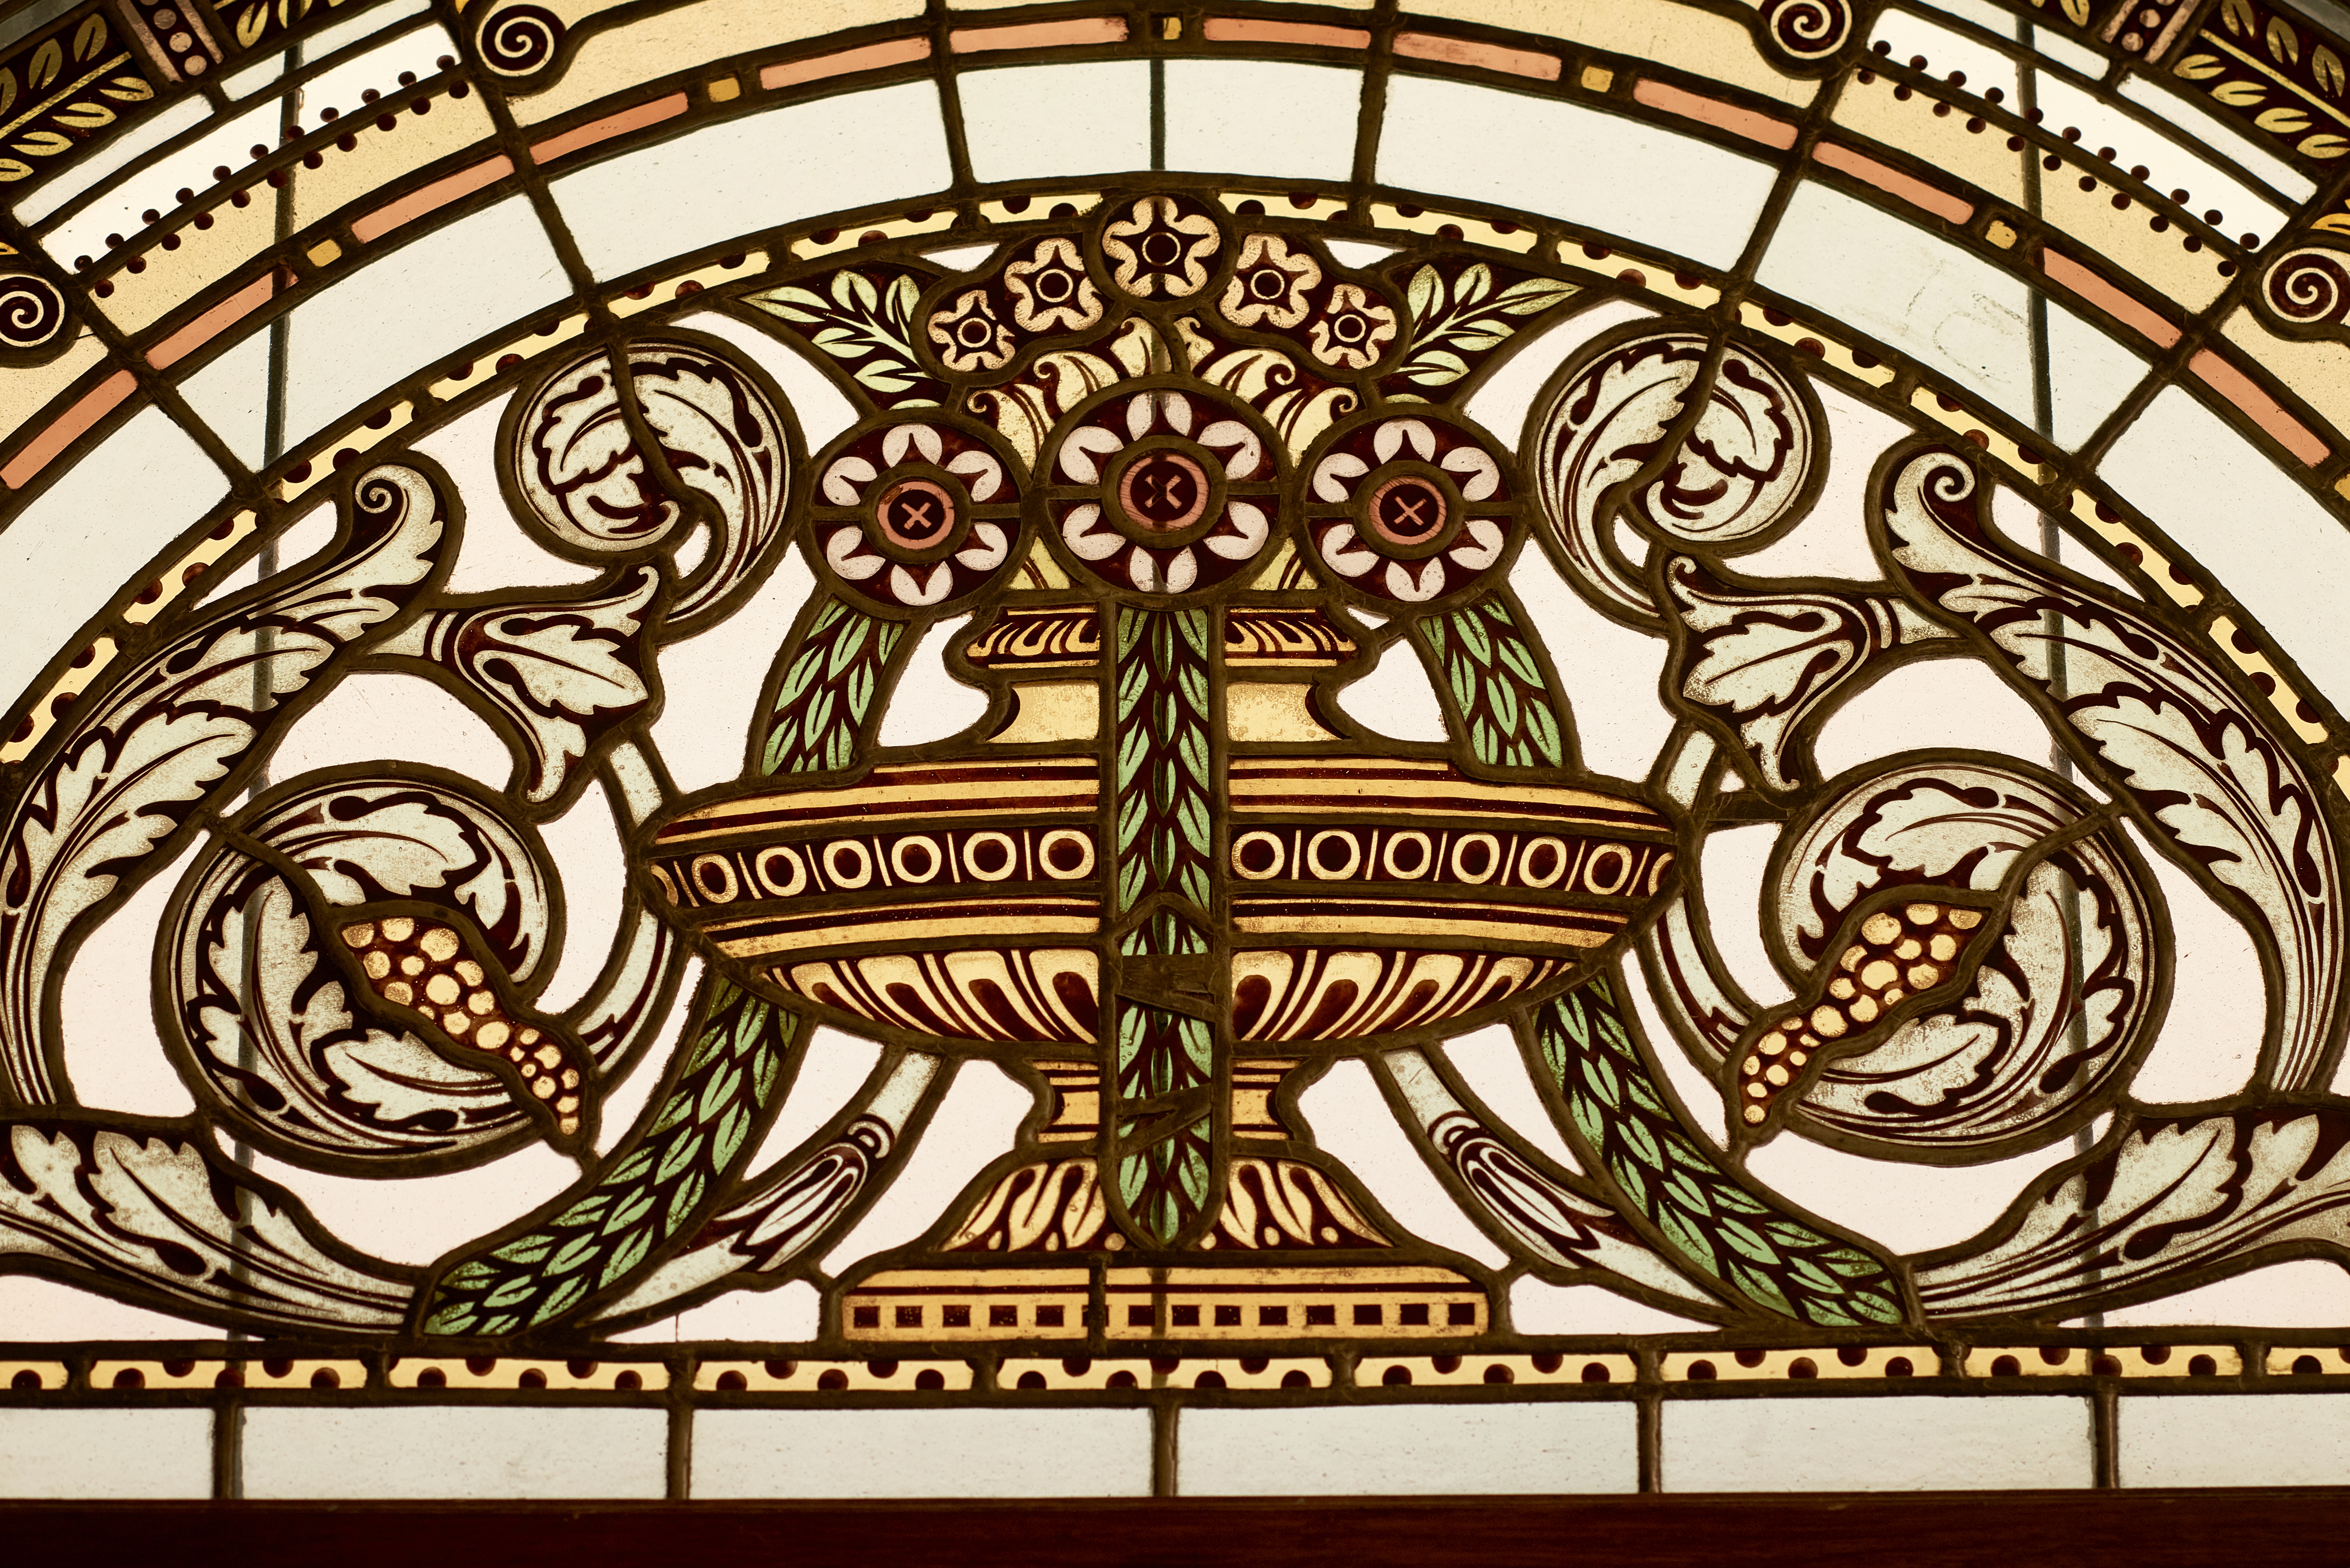 9._stained_glass_art_deco_window_detail_by_glass_artist_miksa_roth_vaci1_budapest_hungary